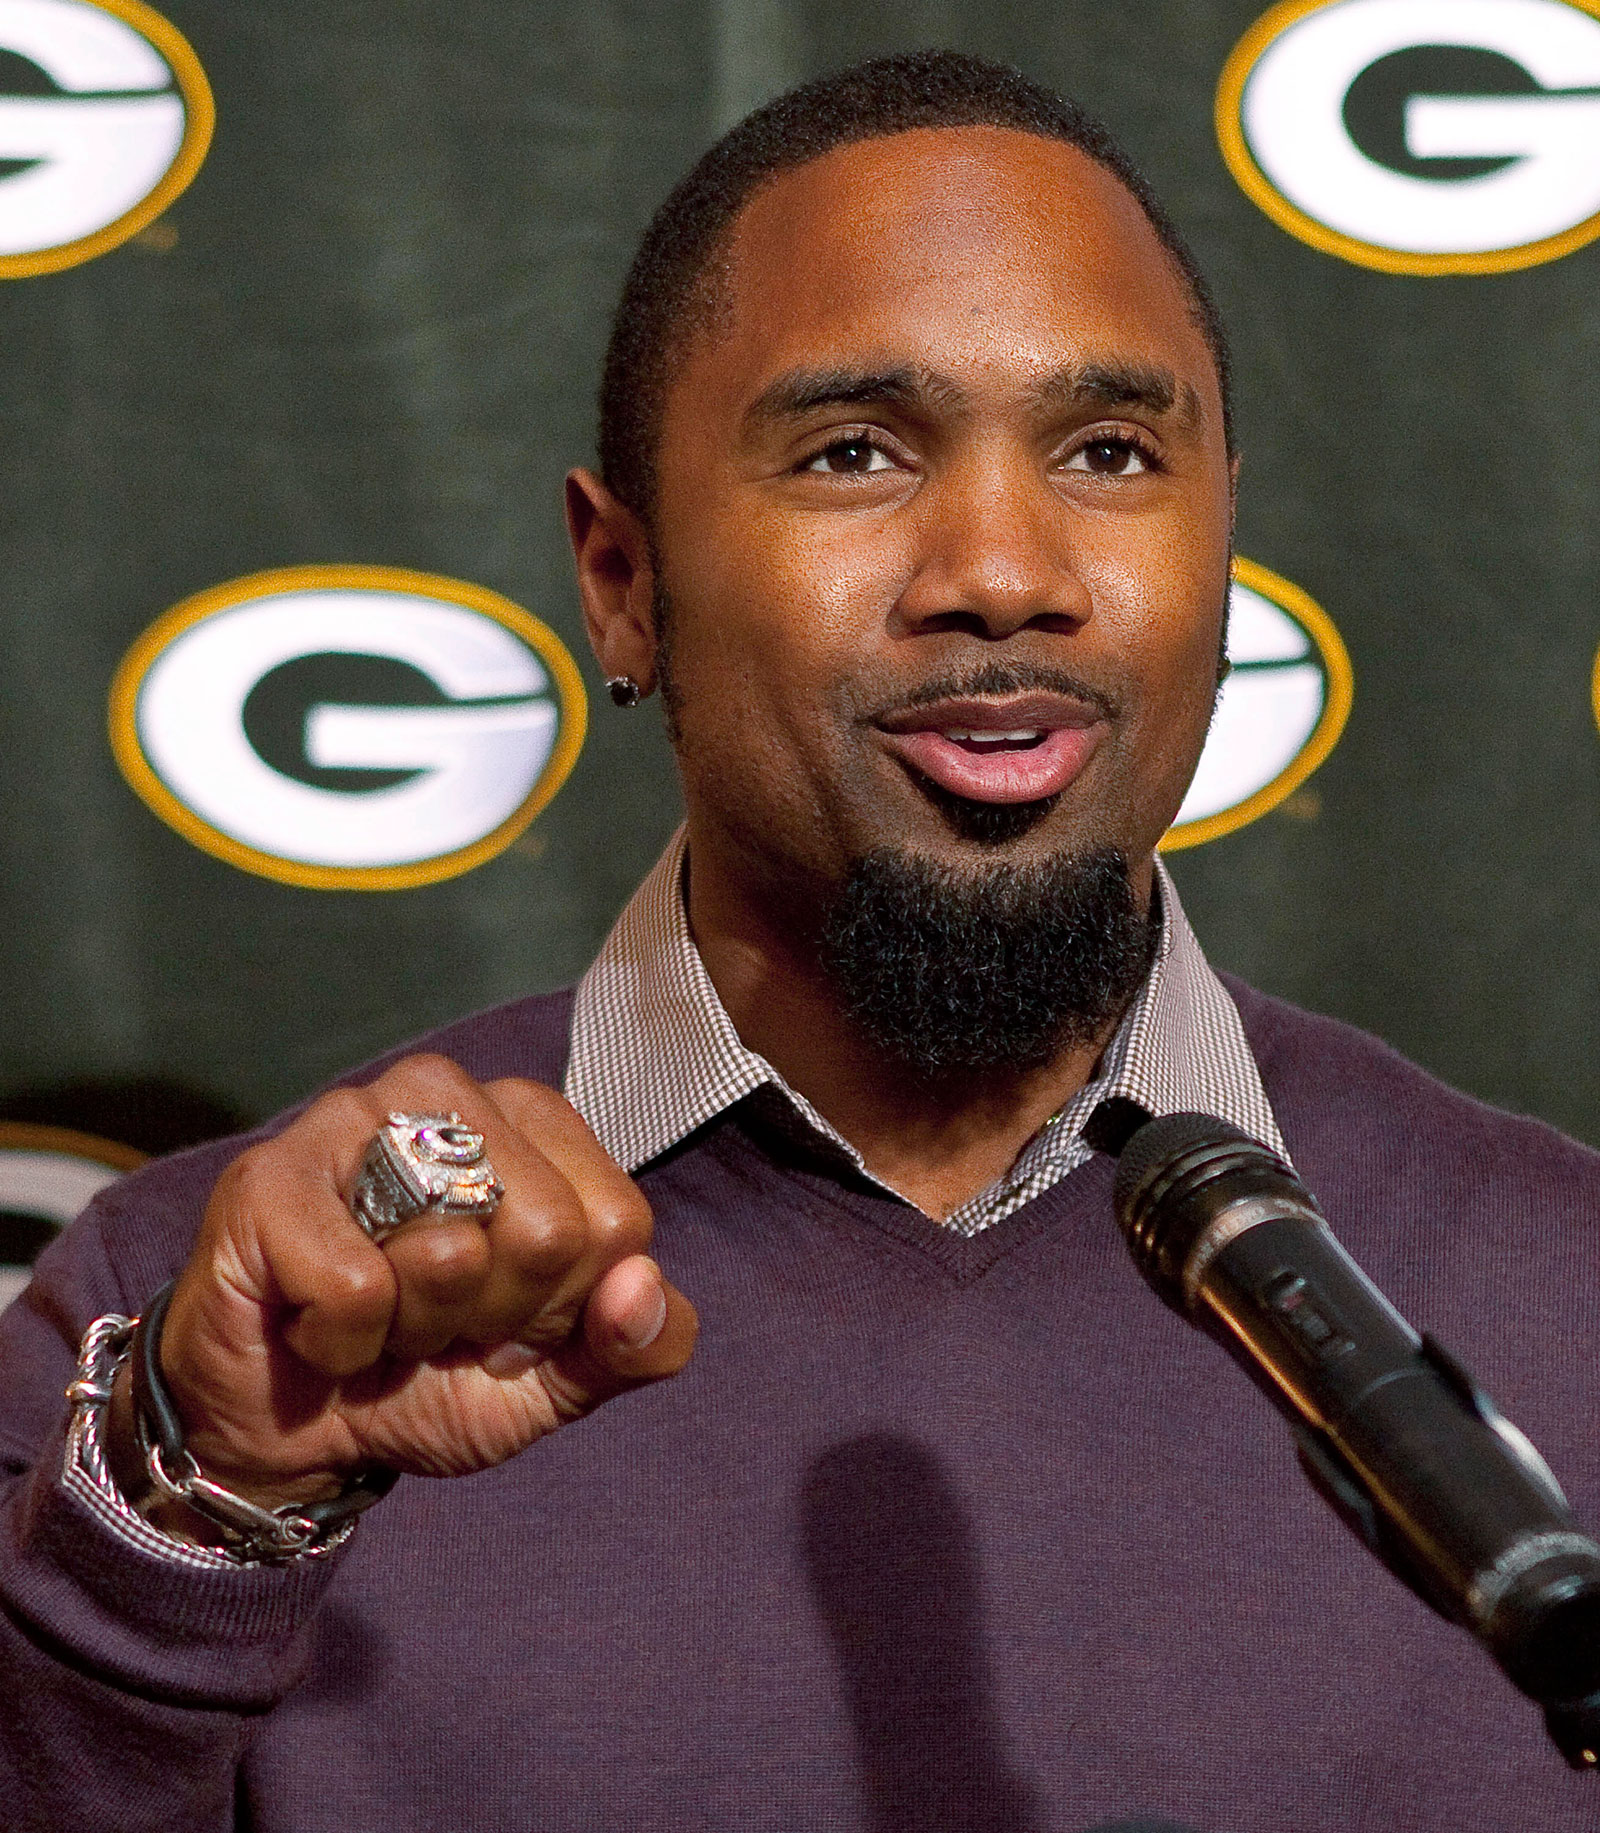 Green Bay Packers' Charles Woodson shows off his Super Bowl ring